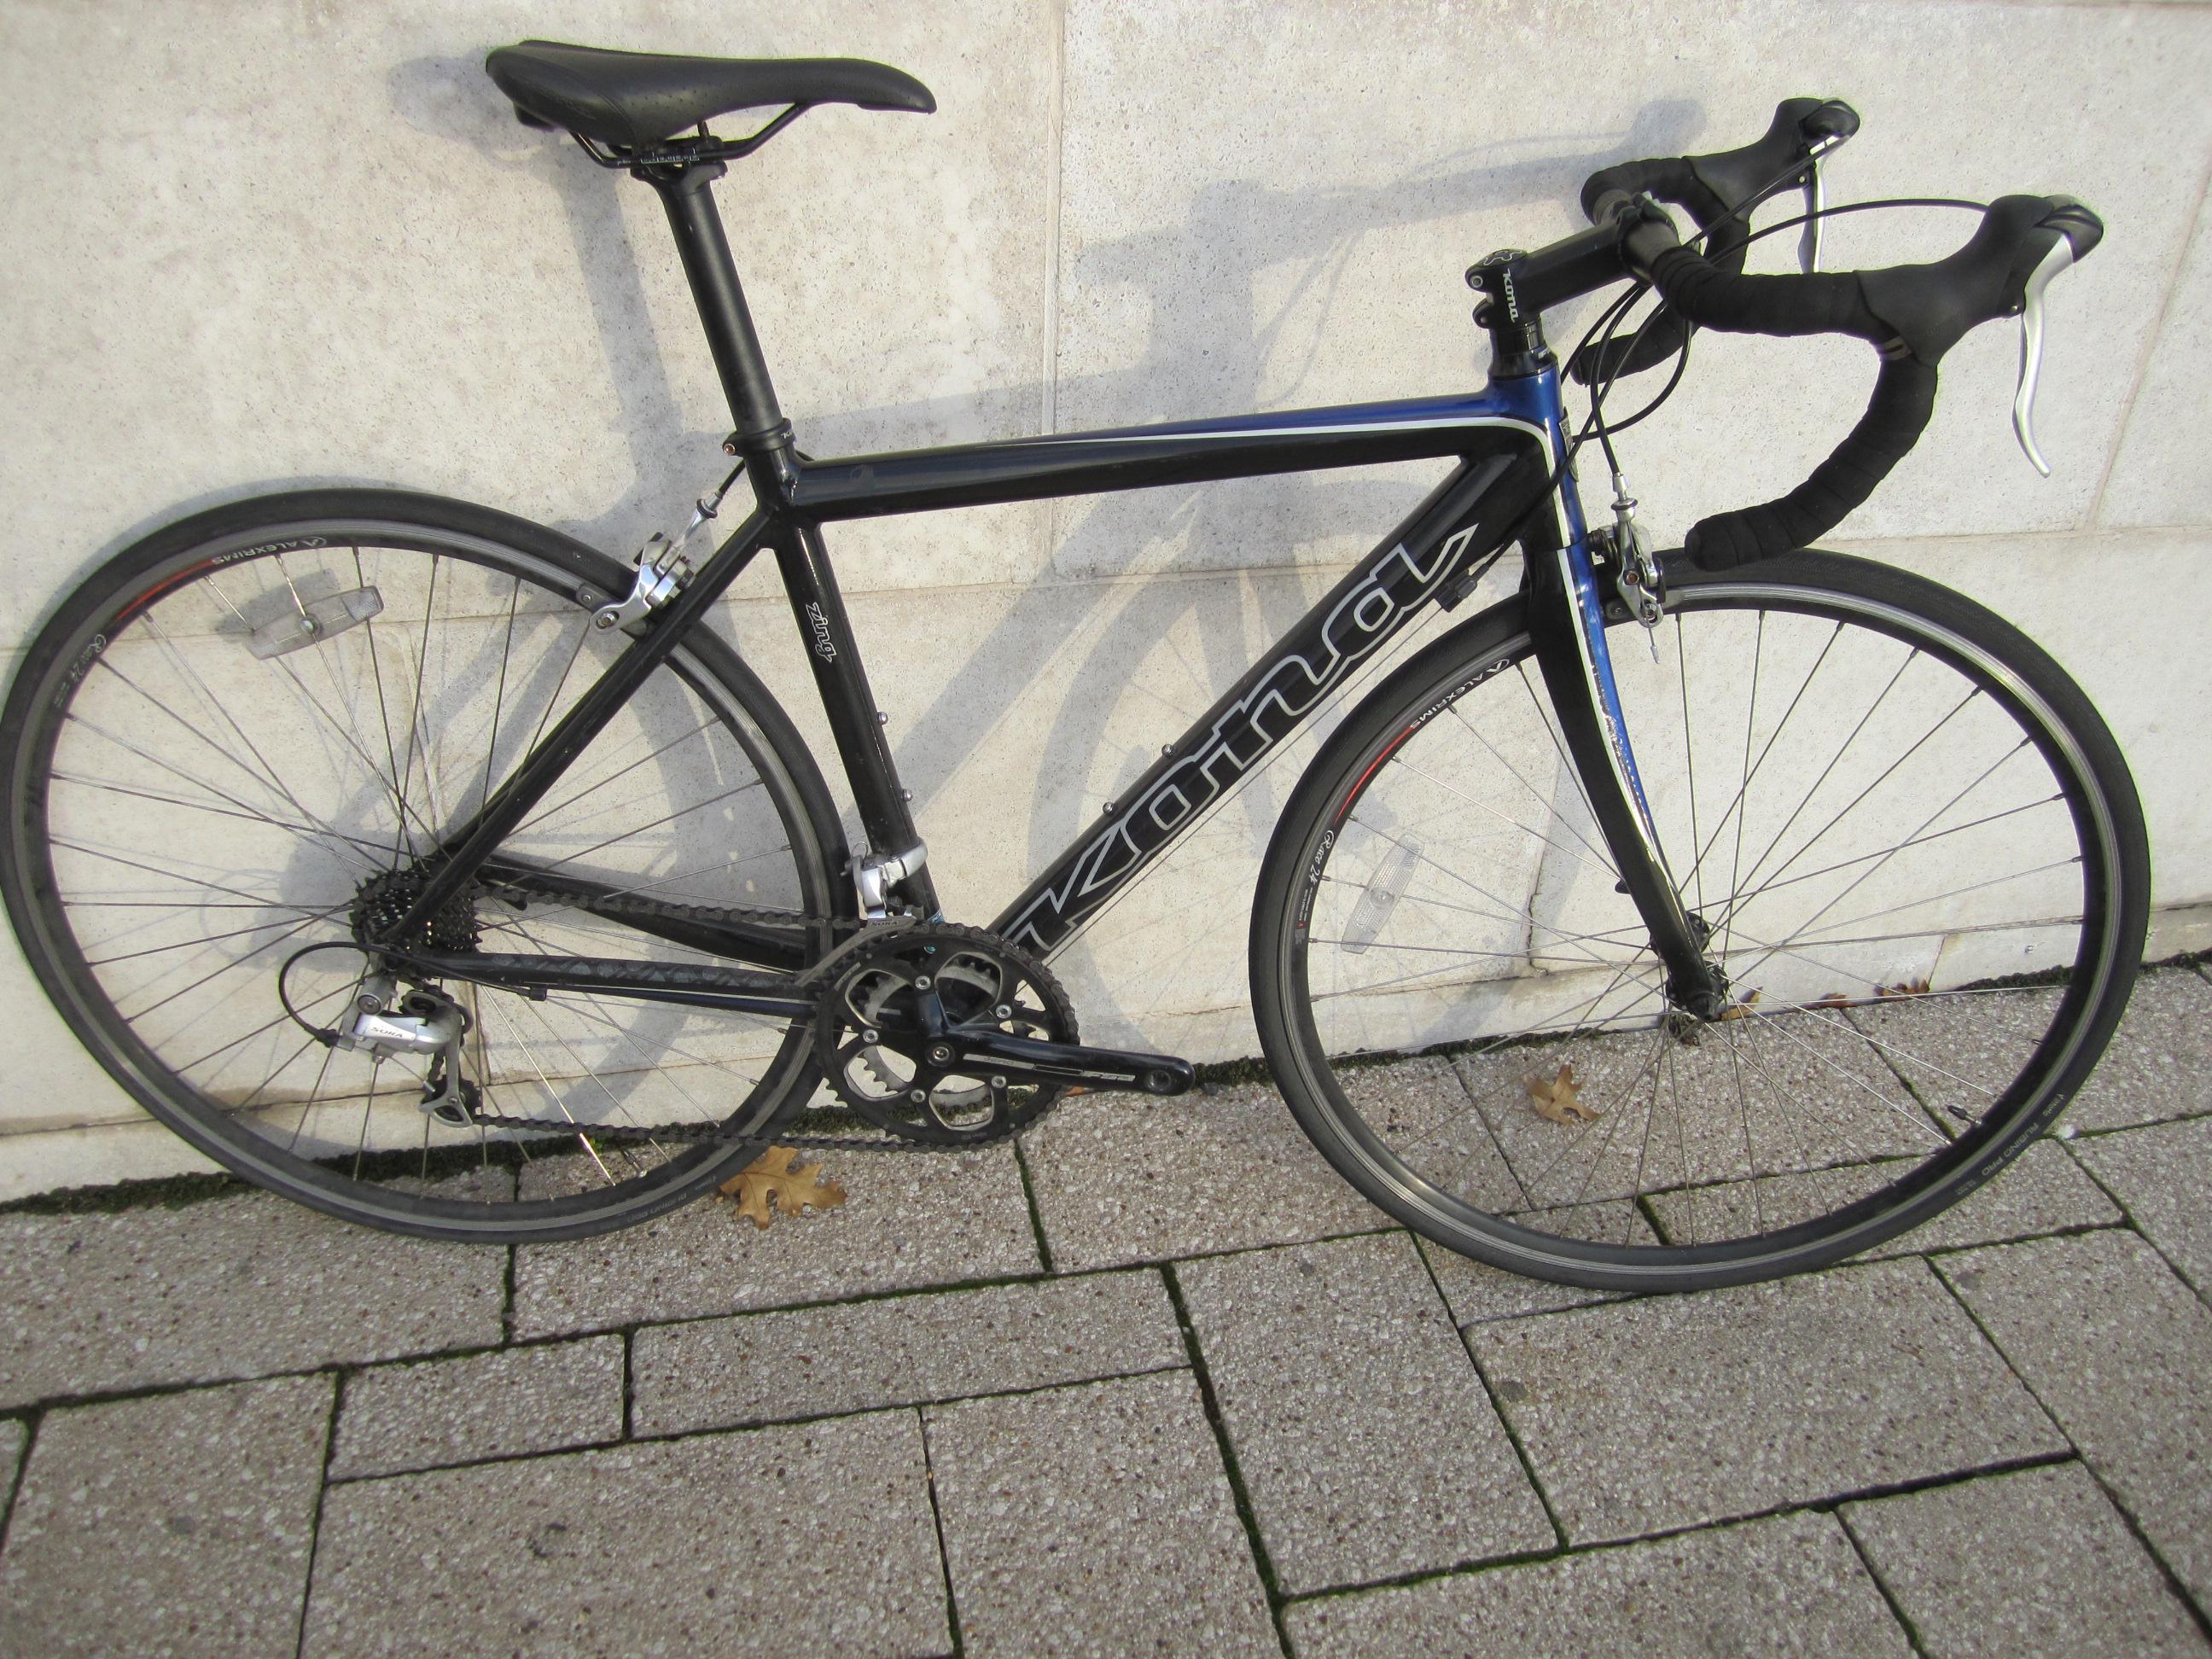 5c2689f4065 For sale: KONA ZING road bike, Shimano Sora gearset, hydroformed ...